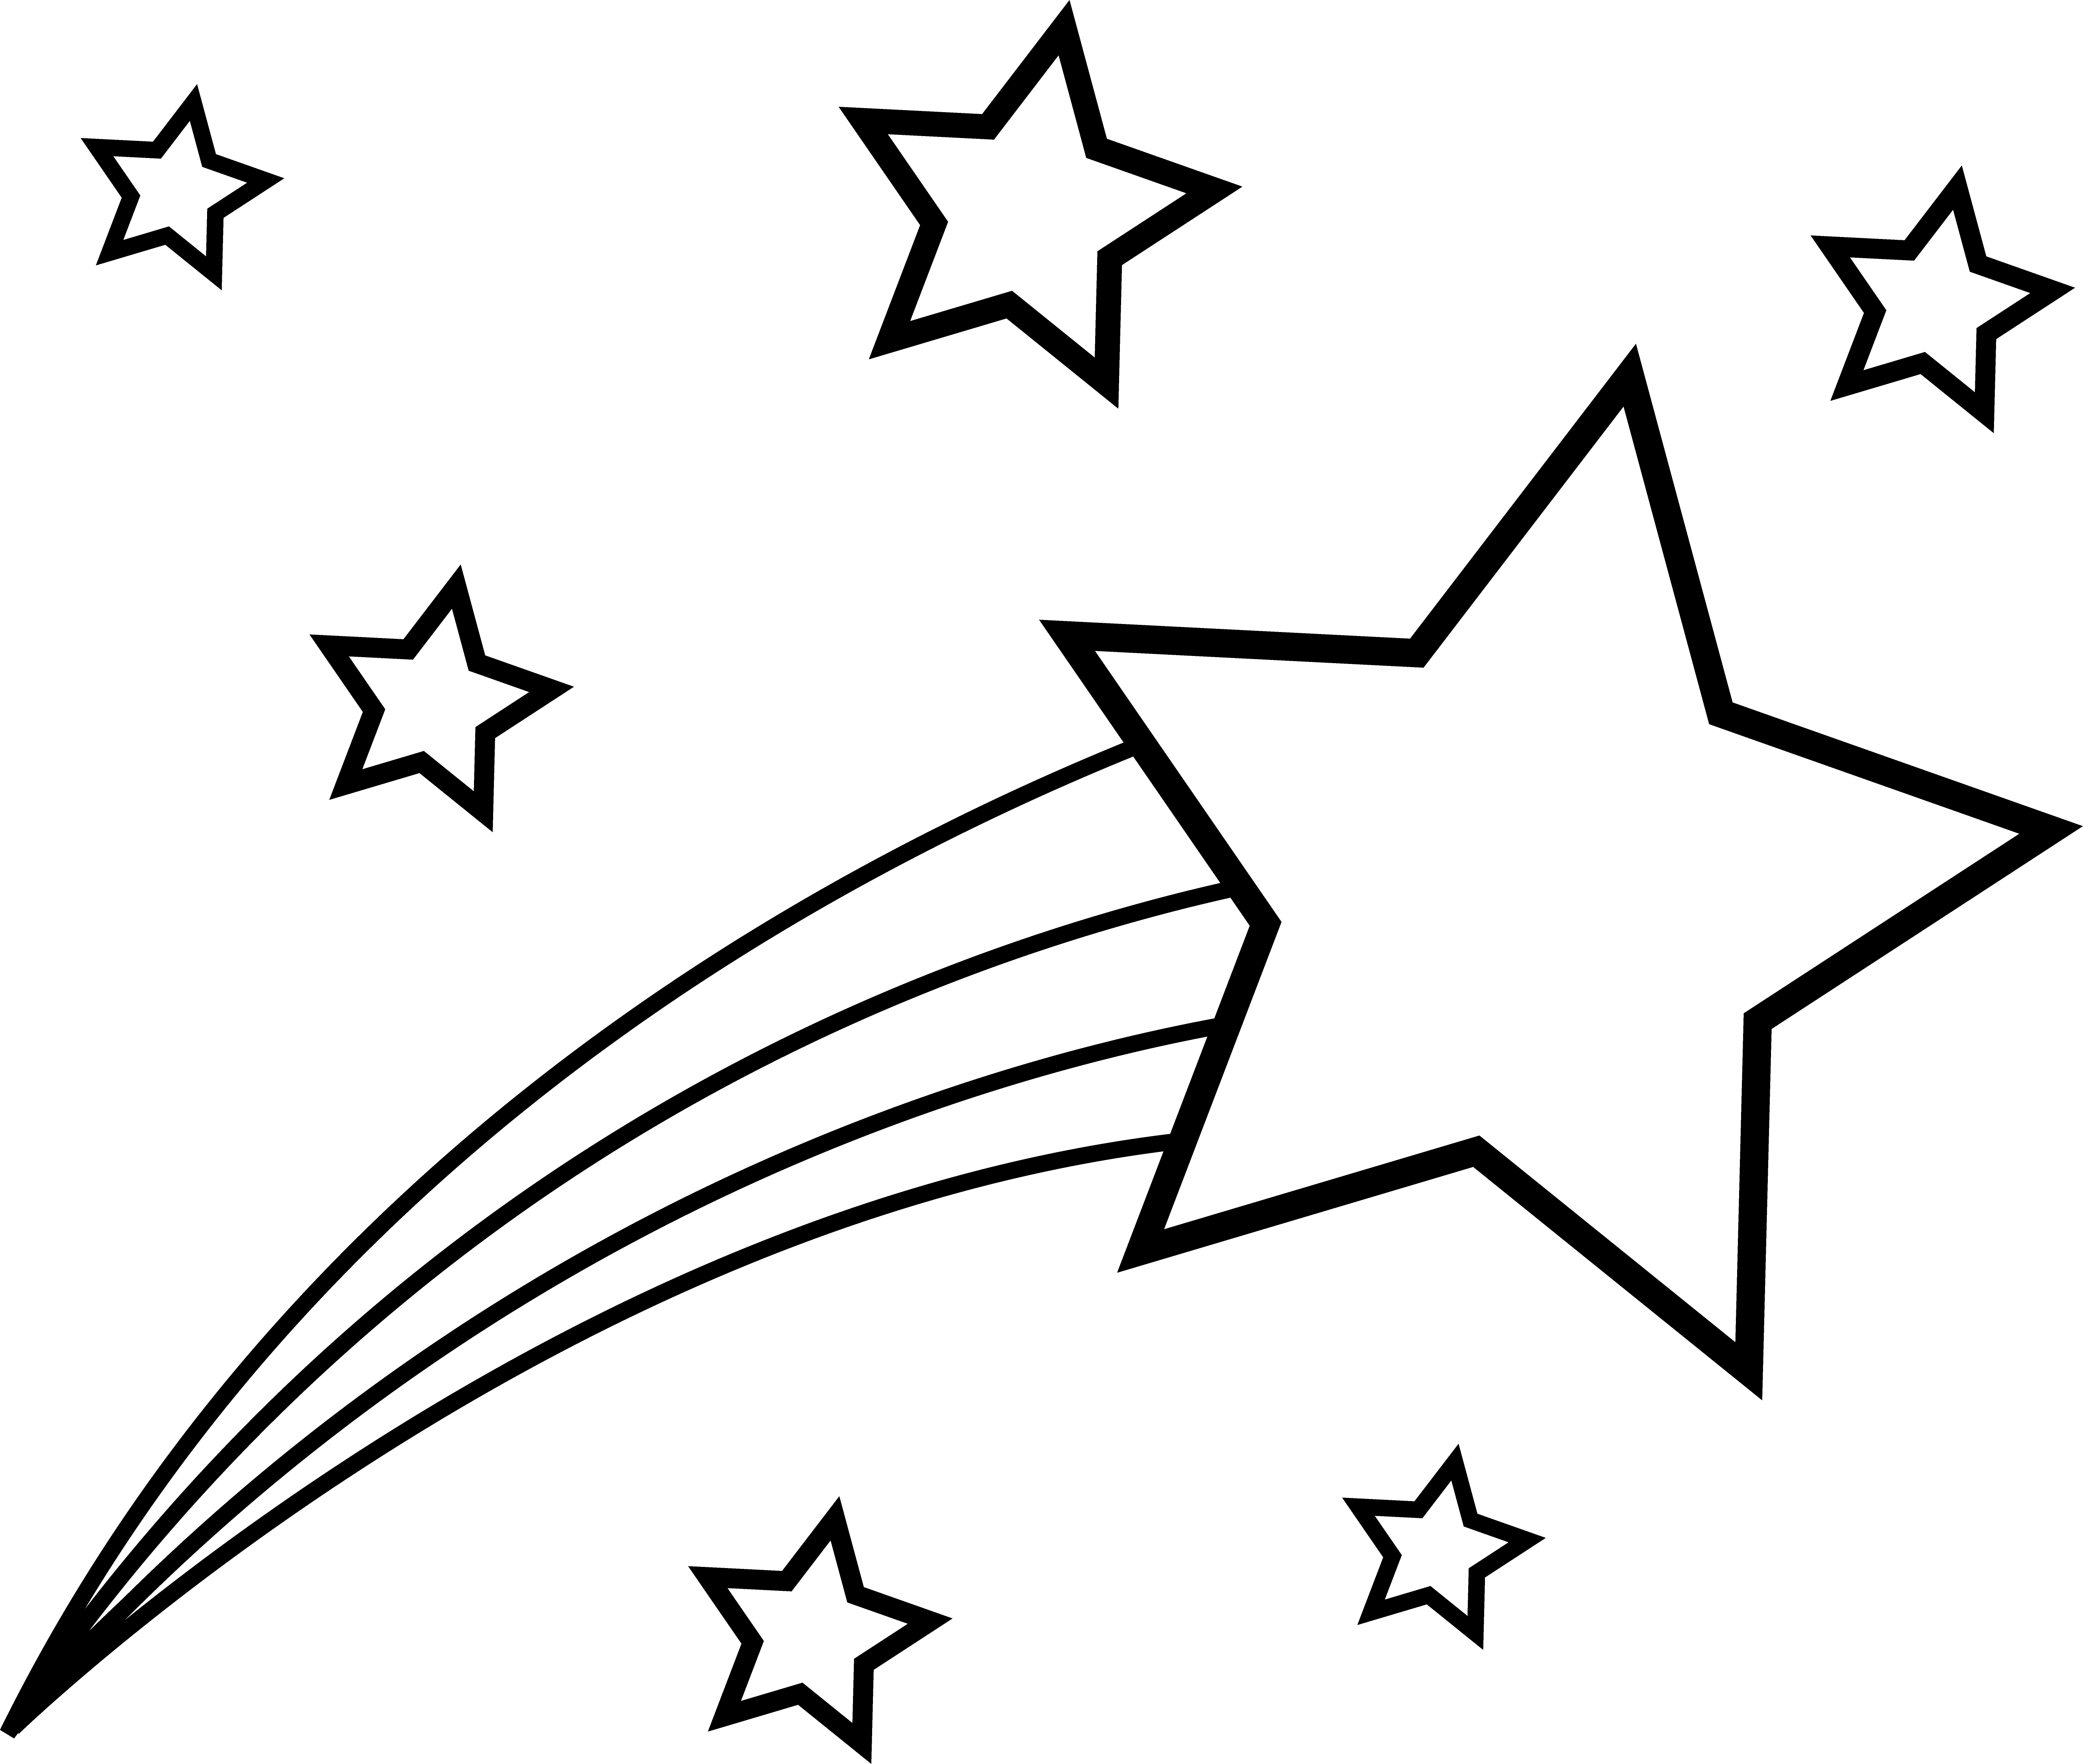 Line Art Star : Star line drawing cliparts